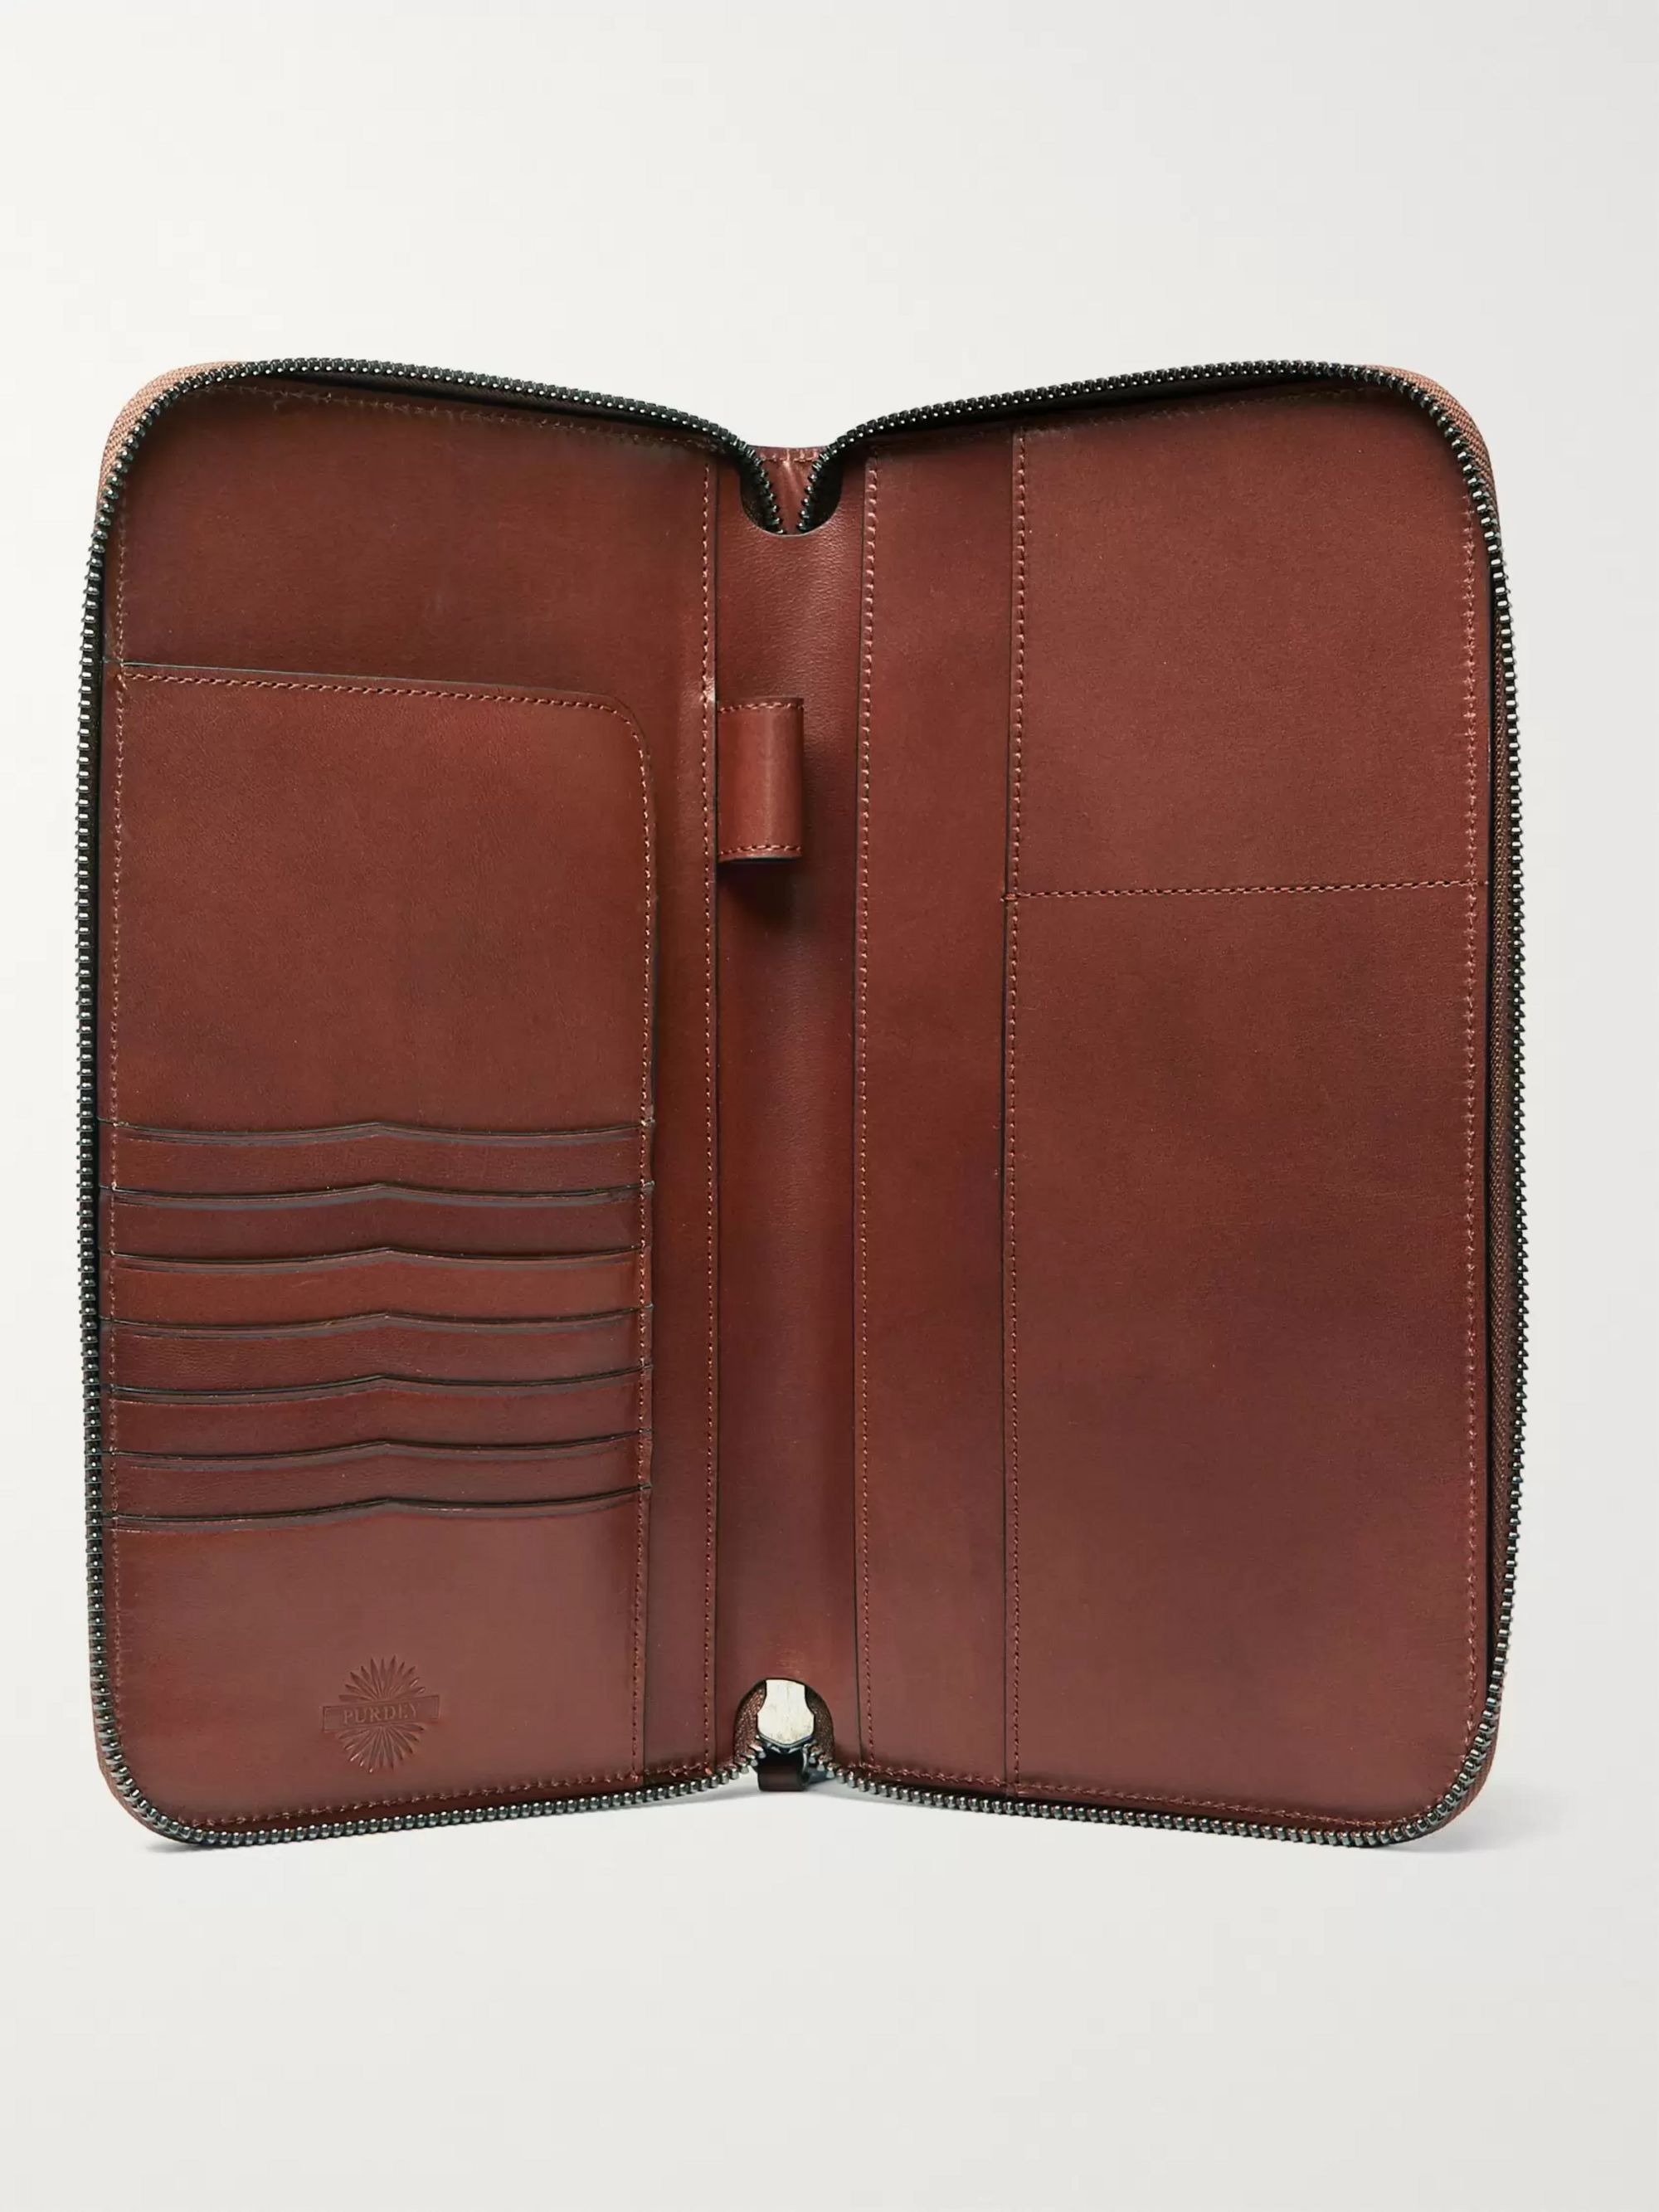 Purdey Leather Travel Wallet